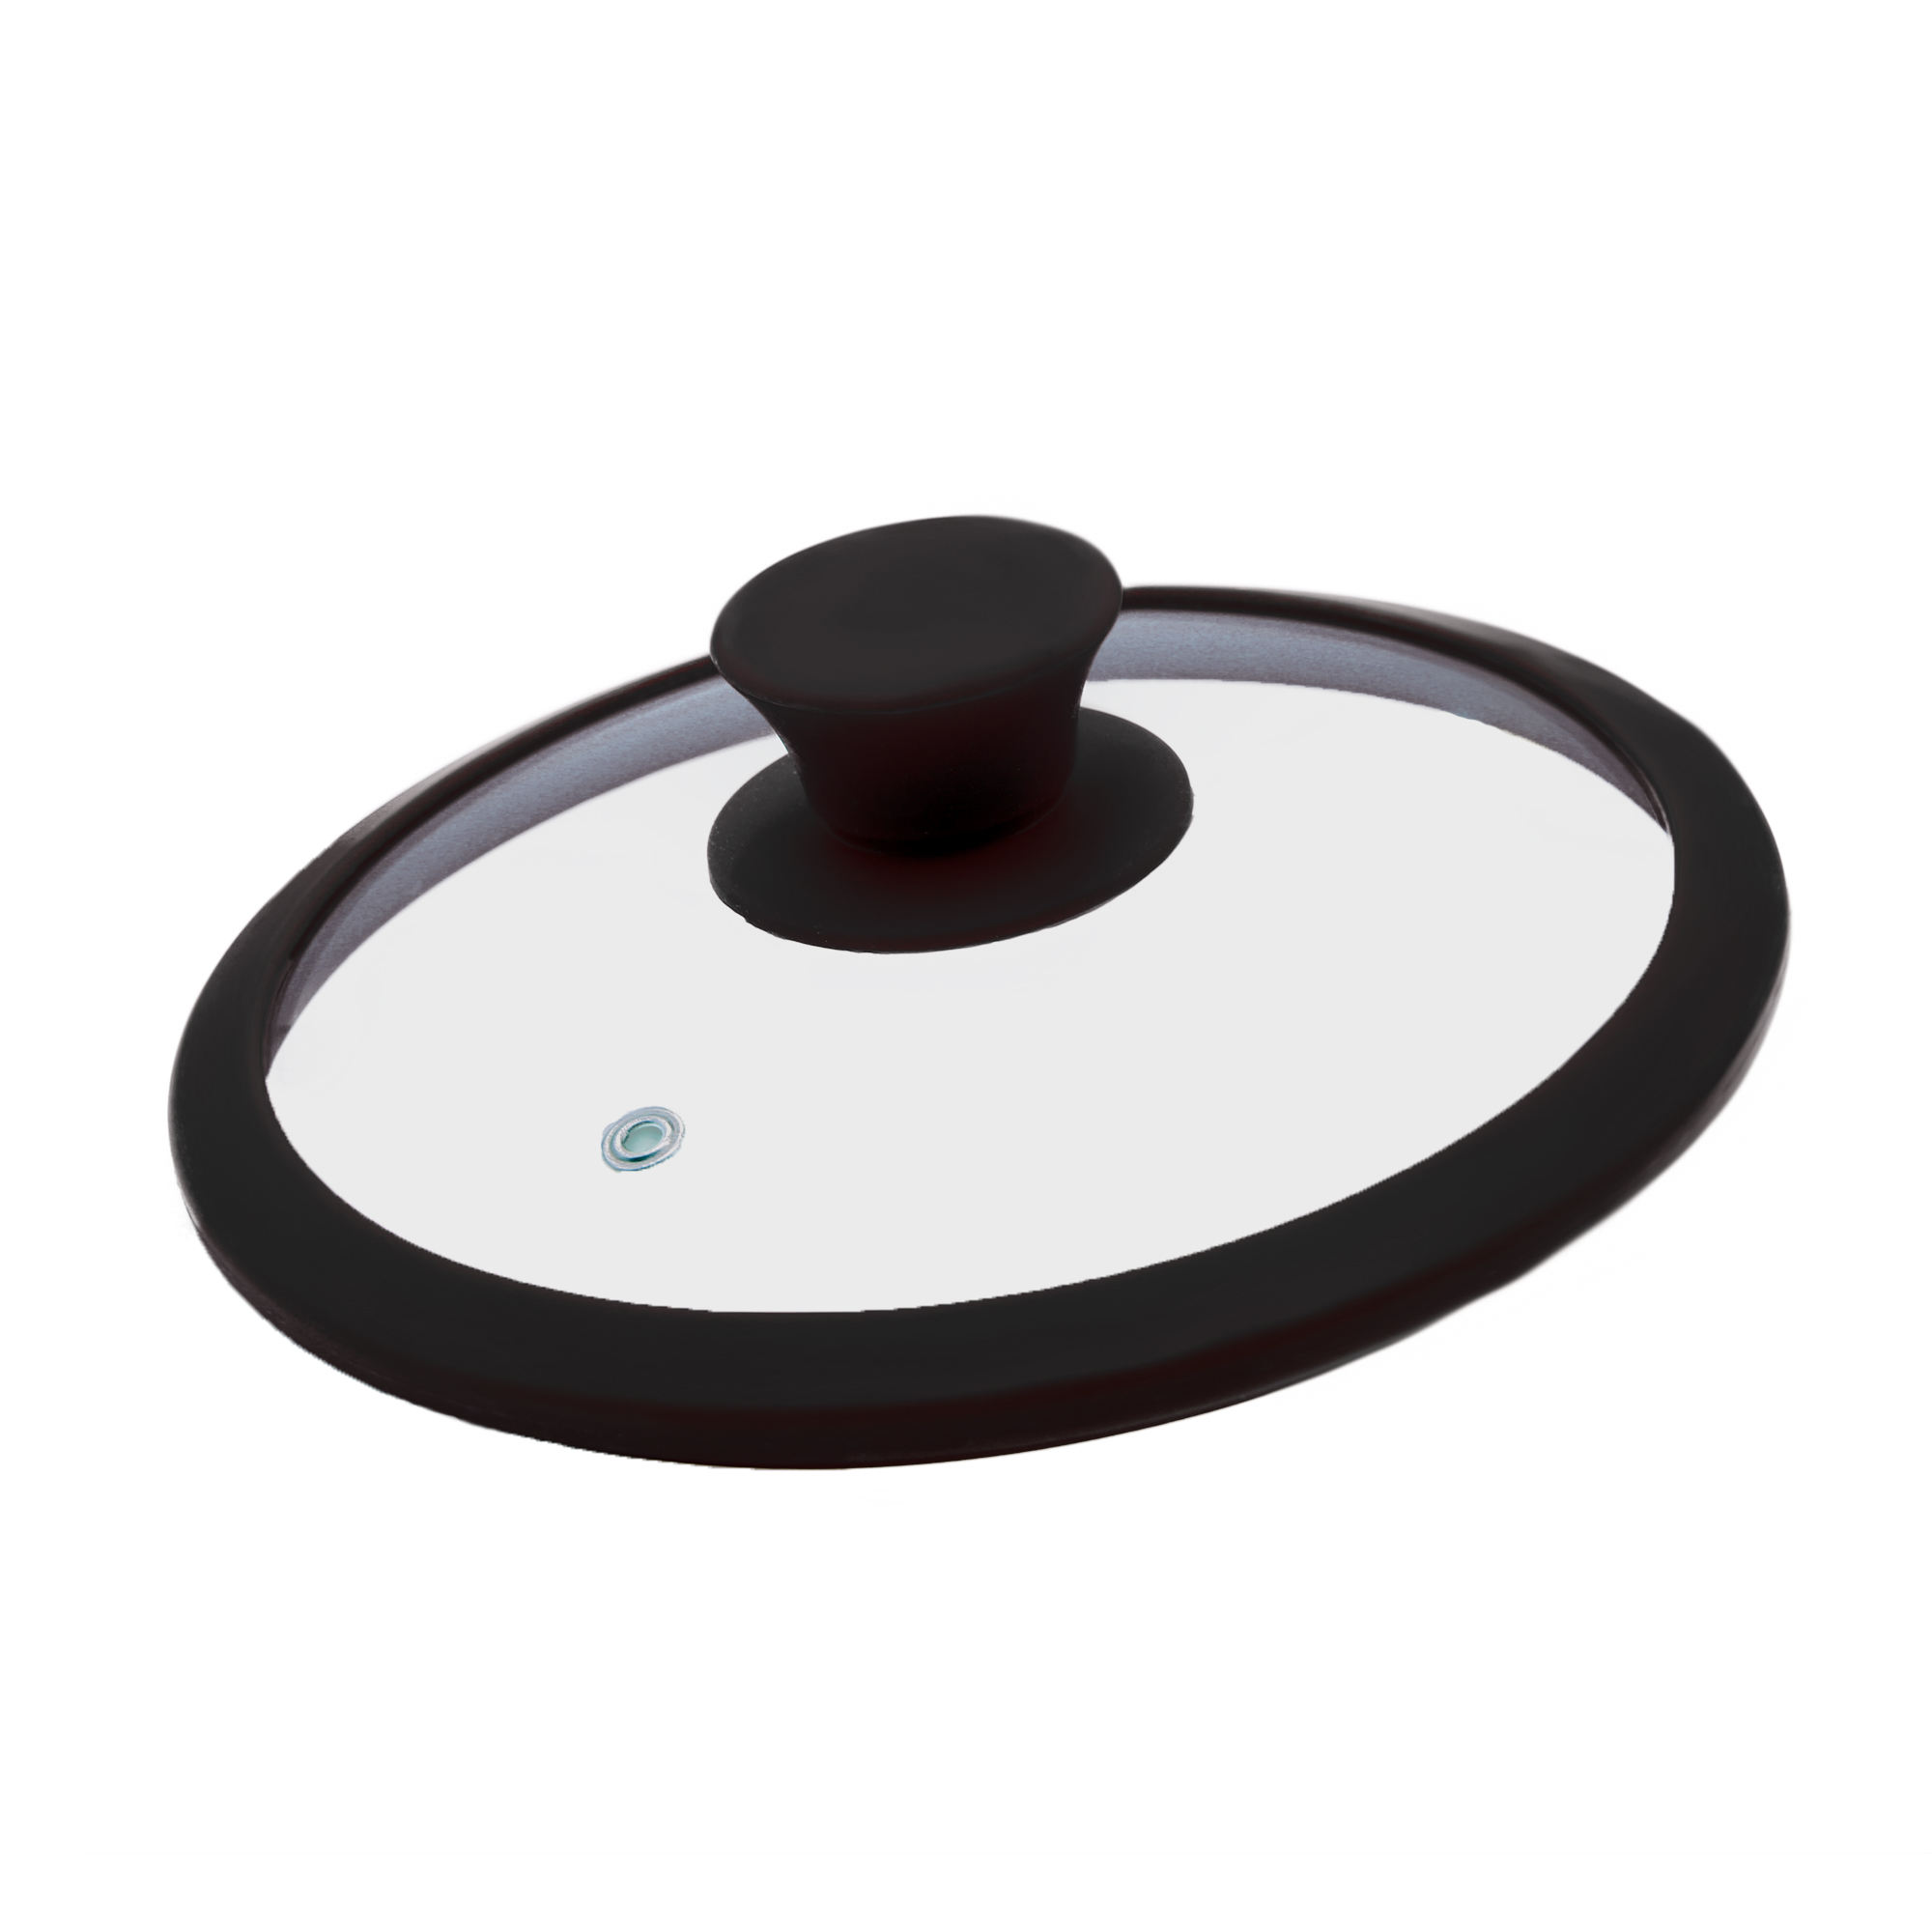 20cm Frying Pan Glass Lid with Silicone Rim Knob FDA LFGB